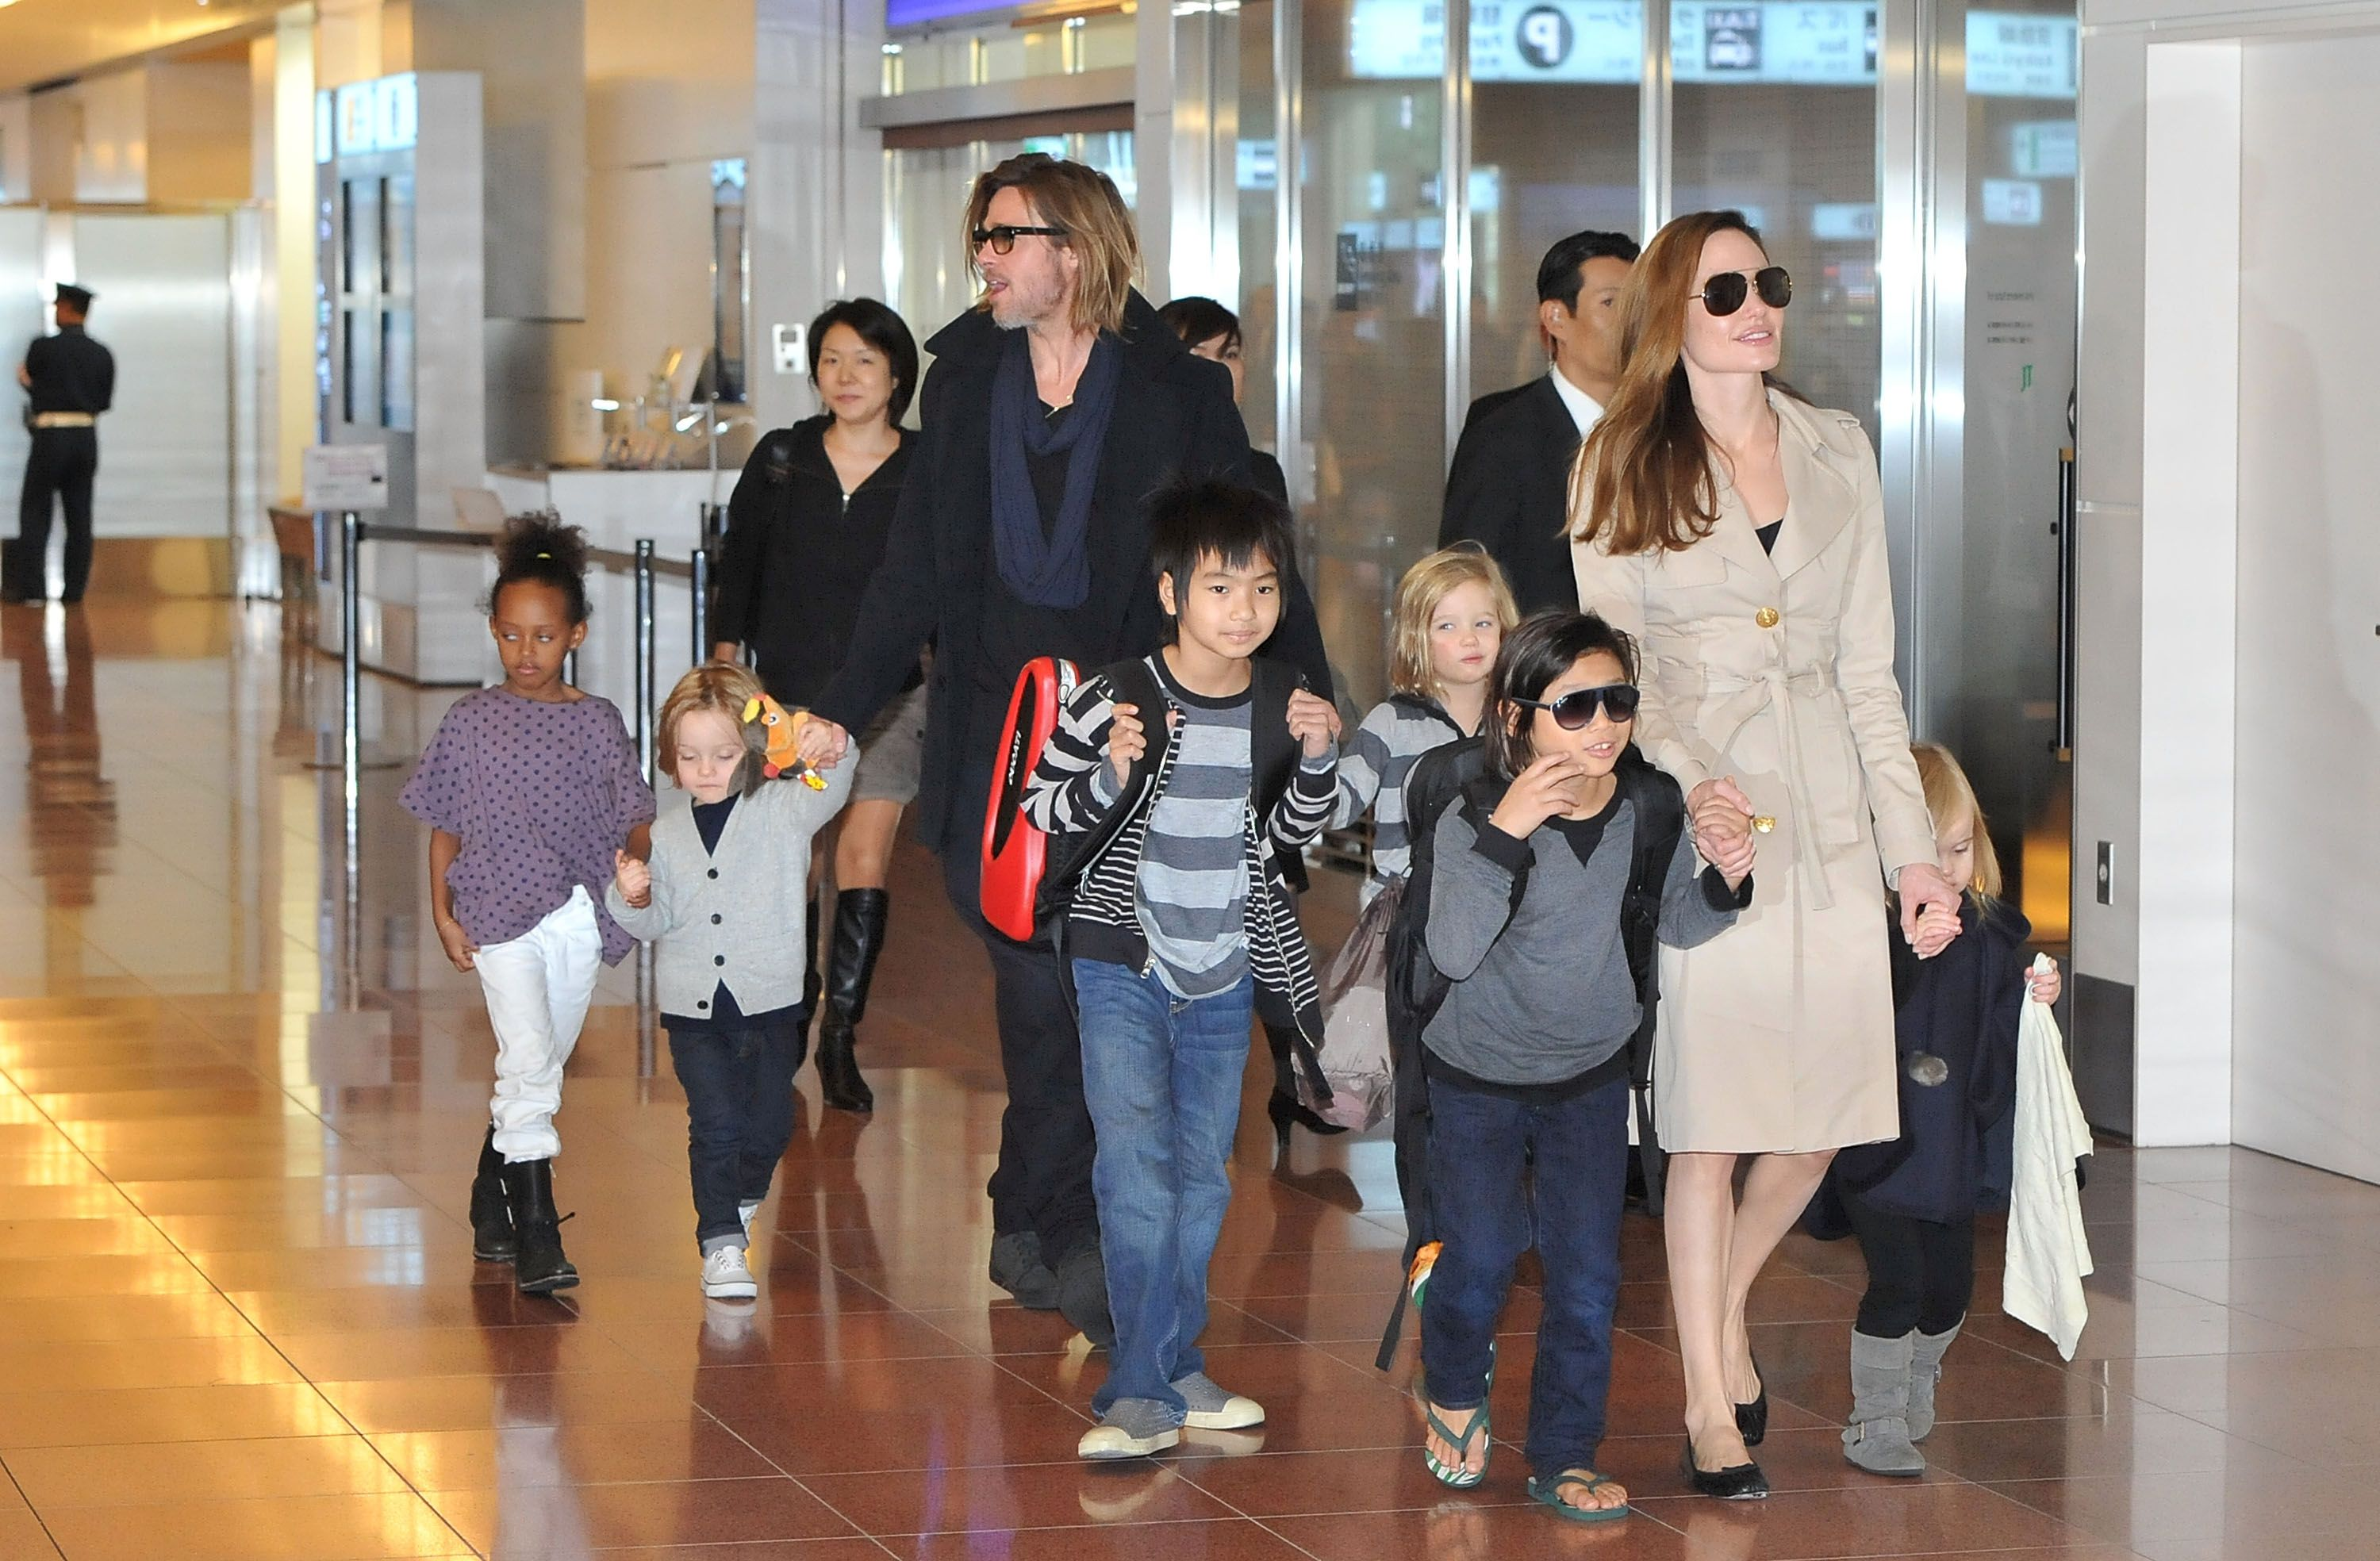 Brad Pitt, Angelina Jolie and their six children Maddox, Pax, Zahara, Shiloh, Knox, and Vivienne at Haneda International Airport on November 8 | Photo: Getty Images